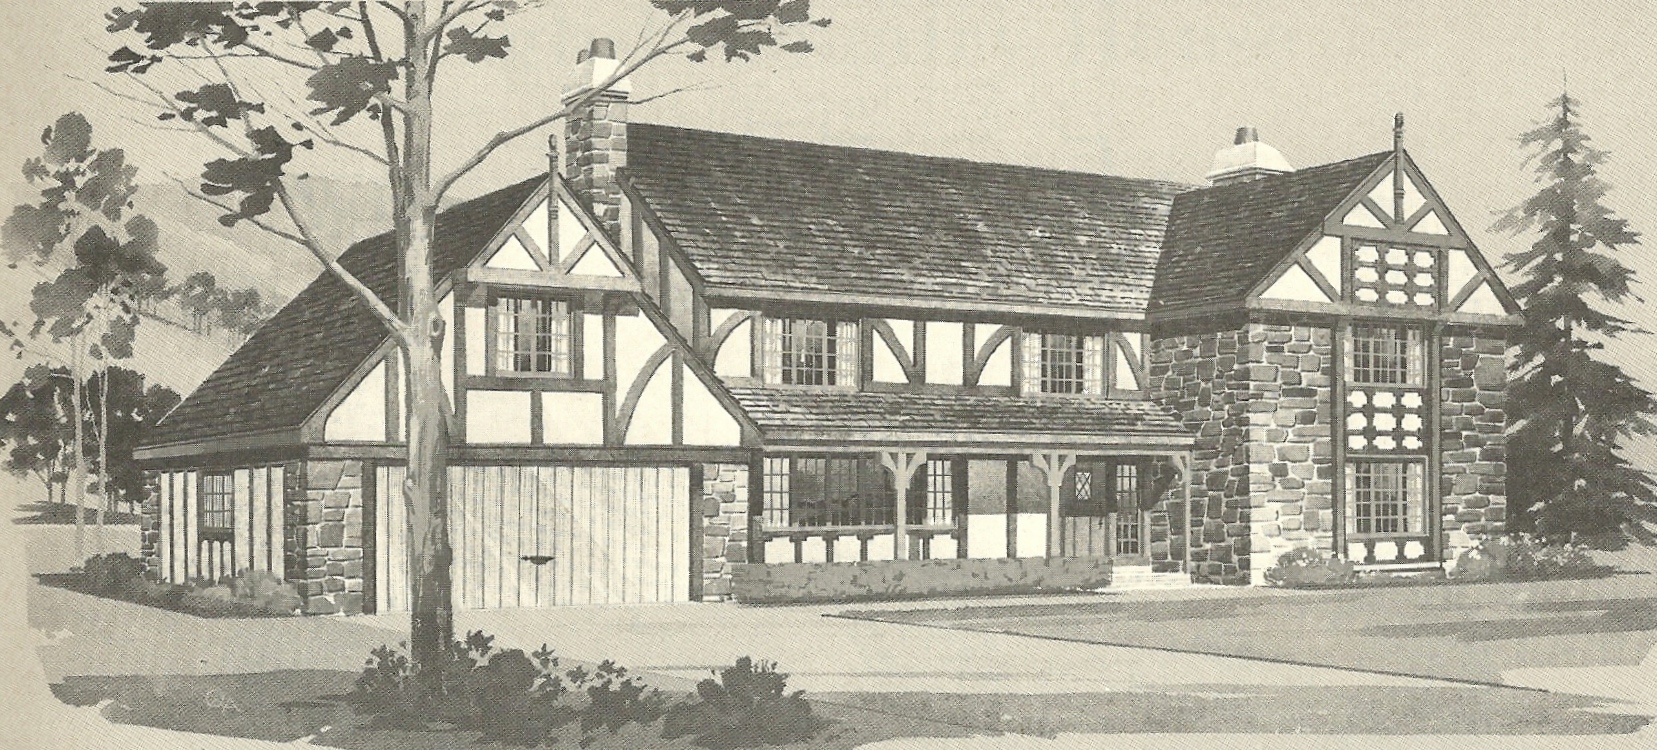 Vintage house plans 1970s english style tudor homes for New home plans that look old